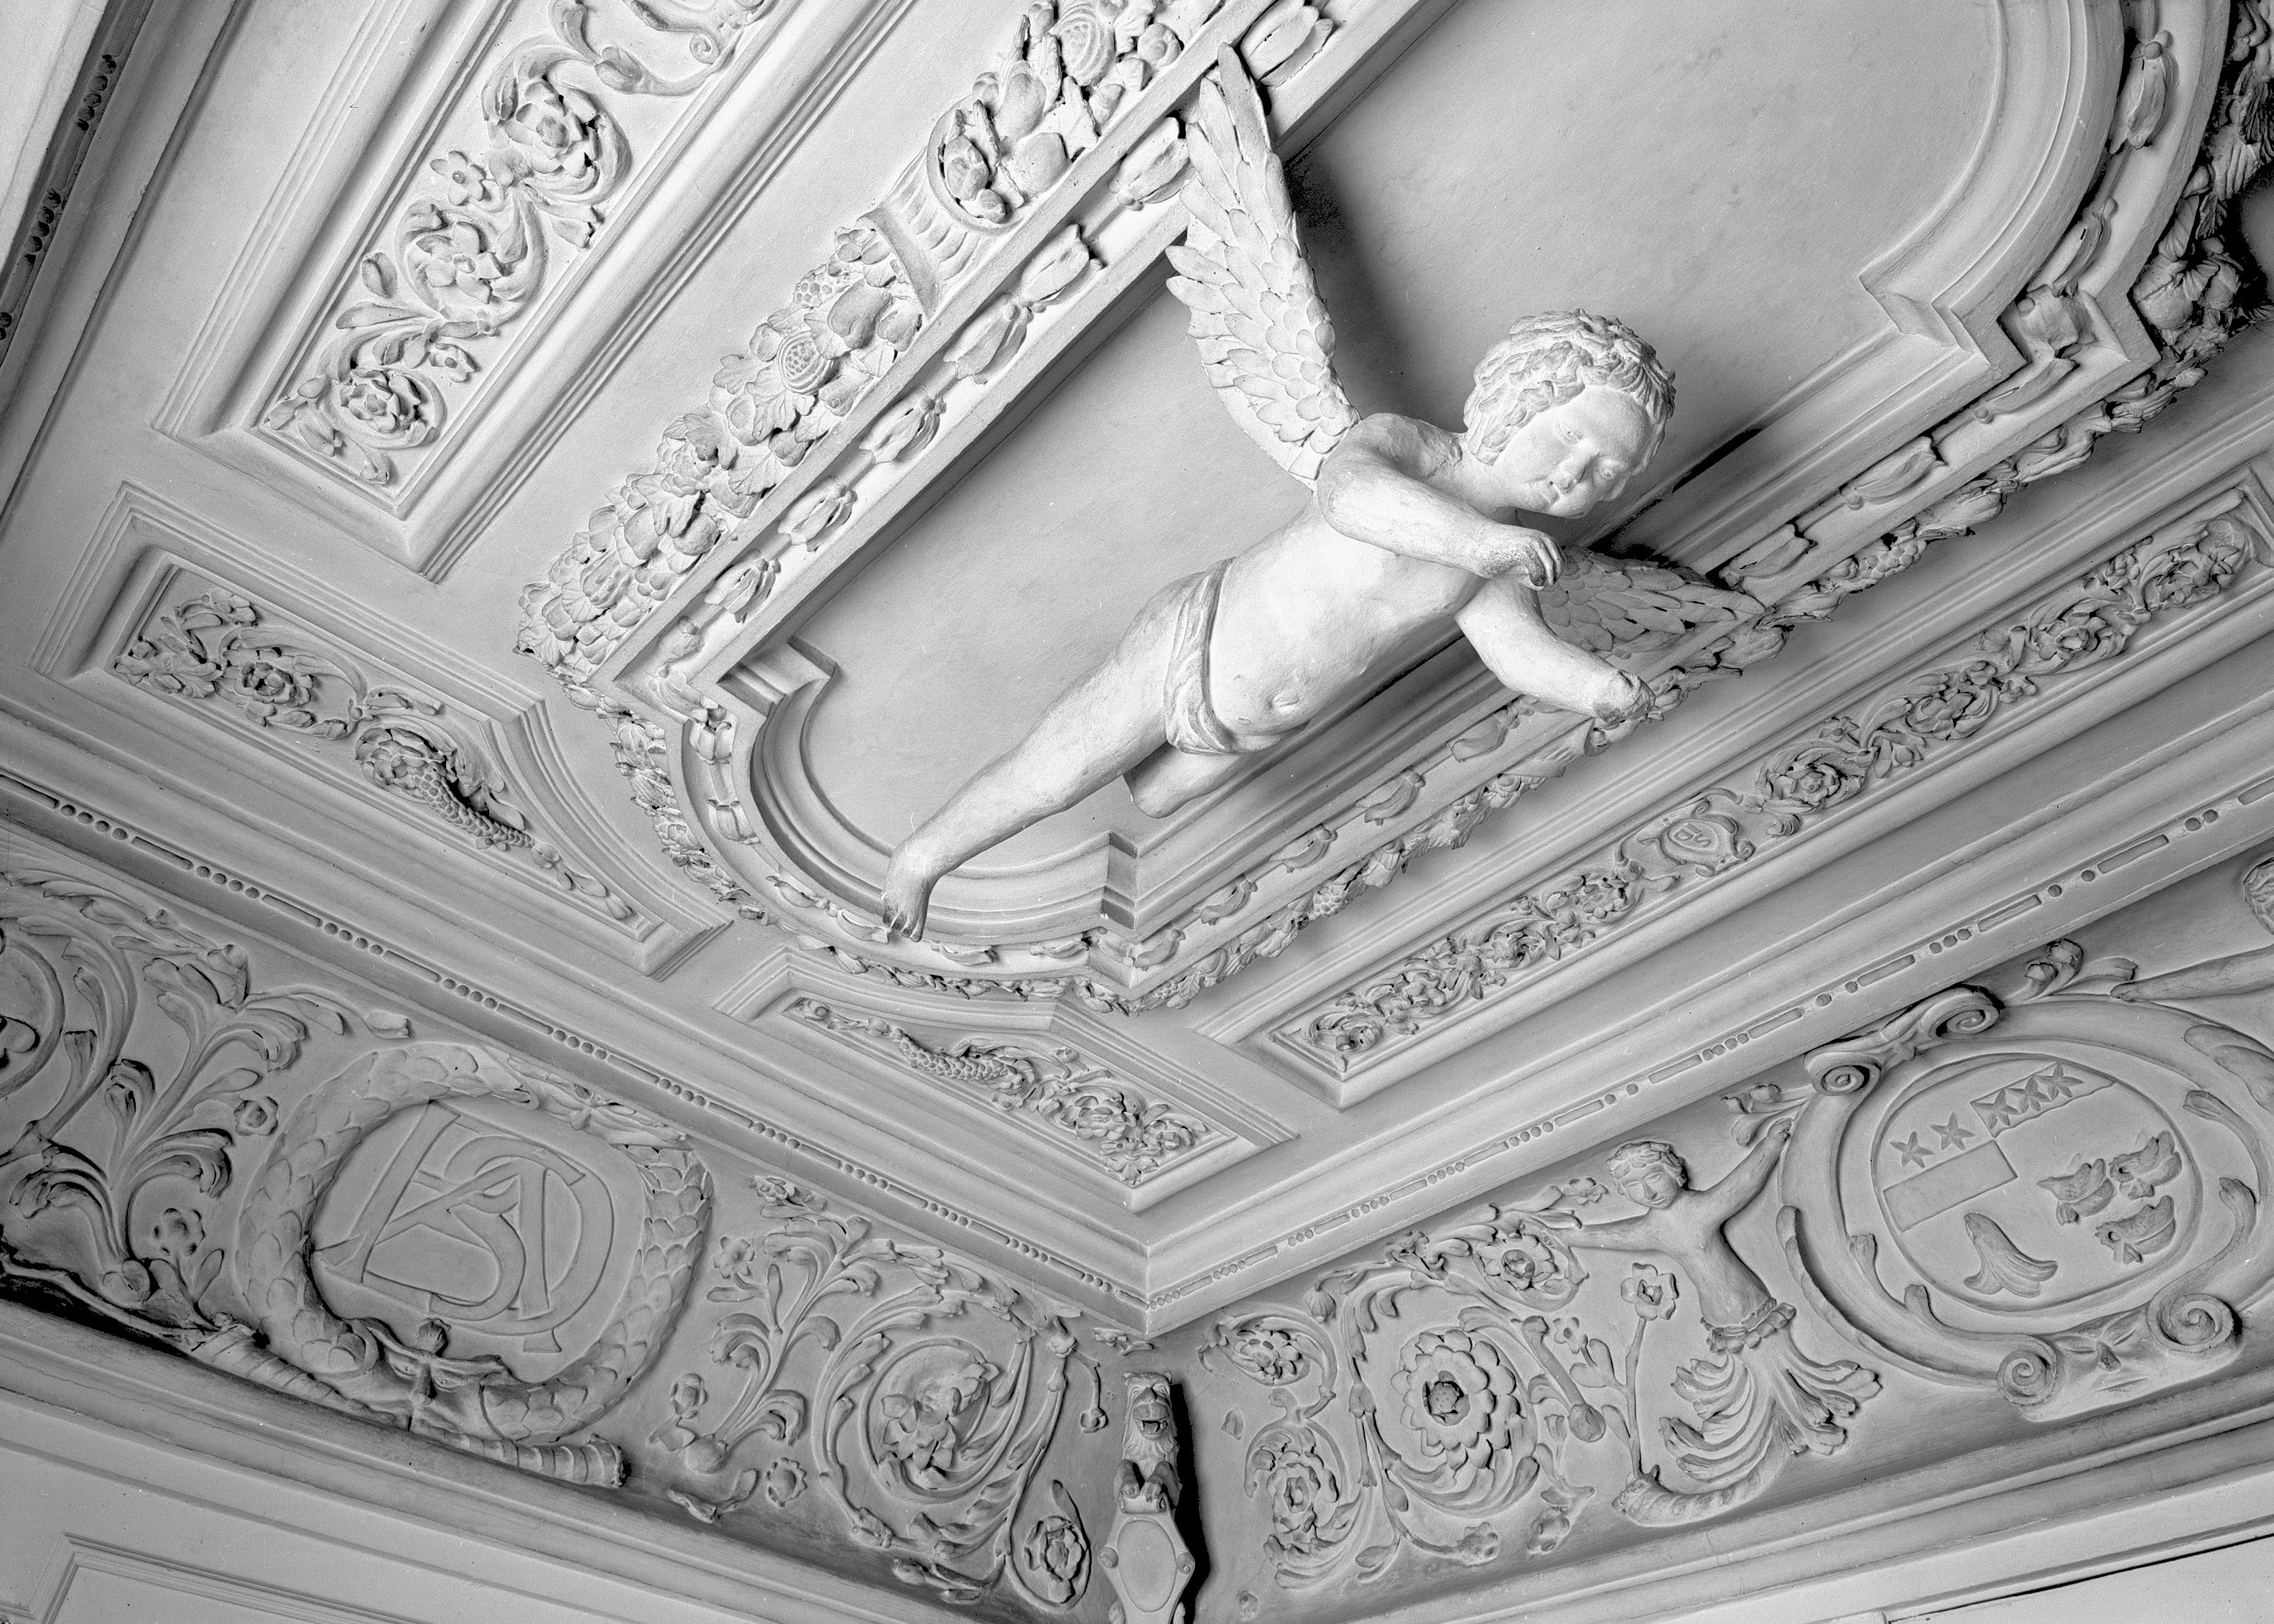 The cupid room in Prestonfield House